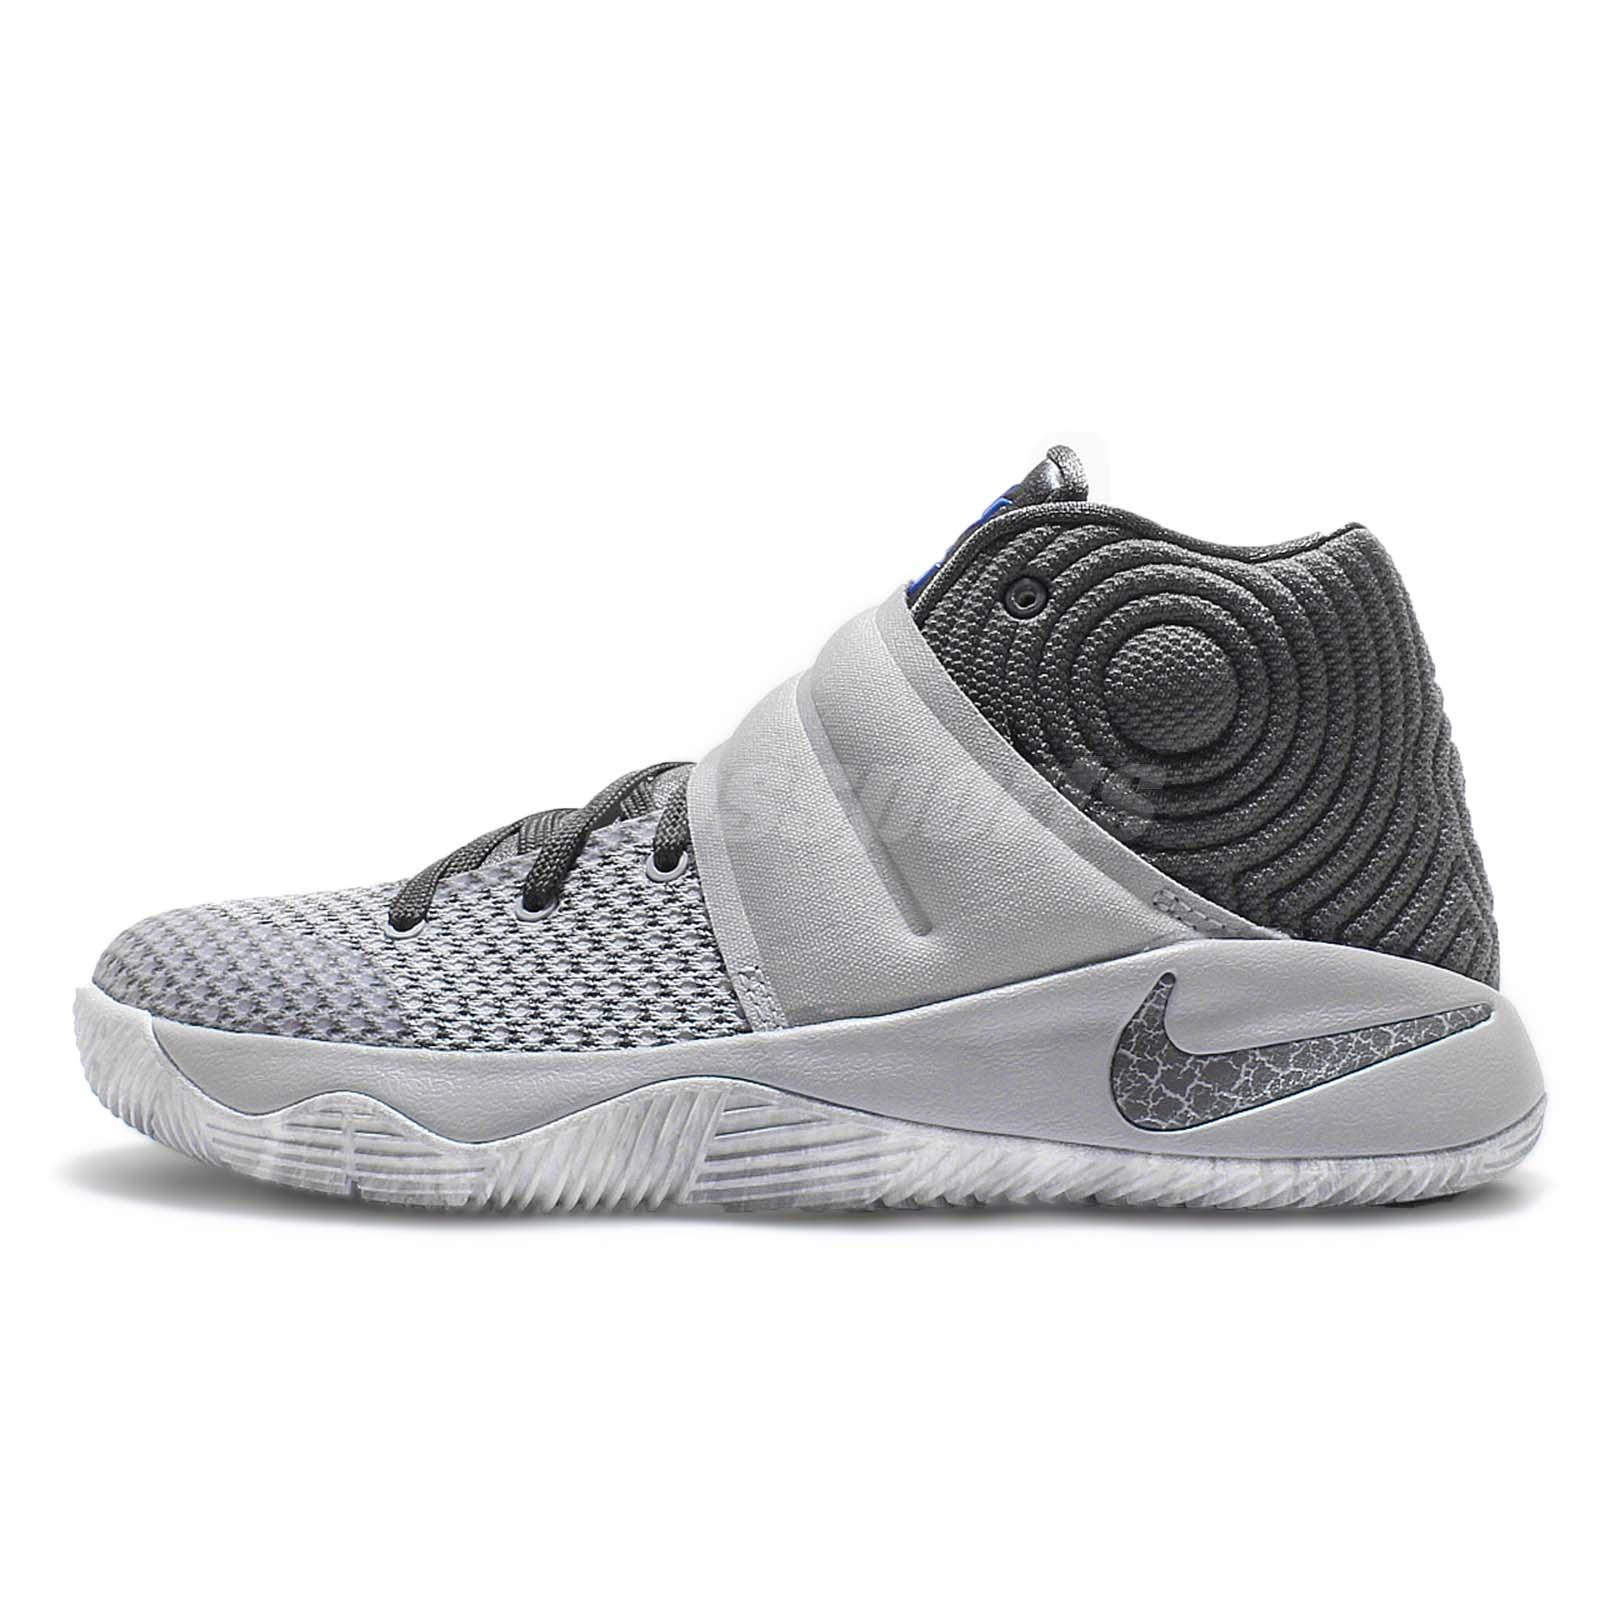 kyrie 2 kids Grey